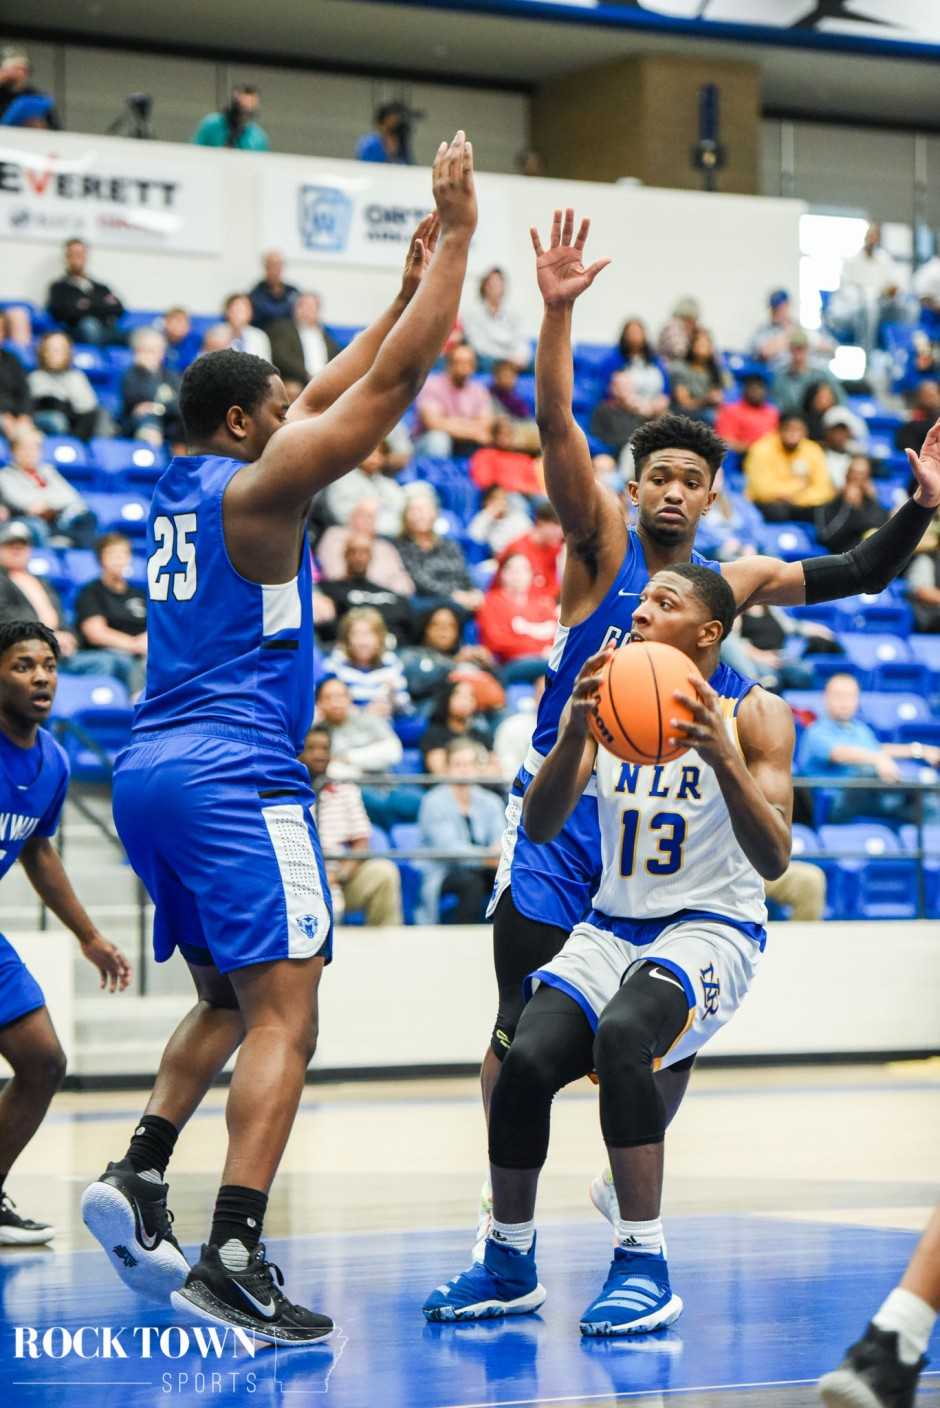 NLR_conway_bball_2020(i)-26